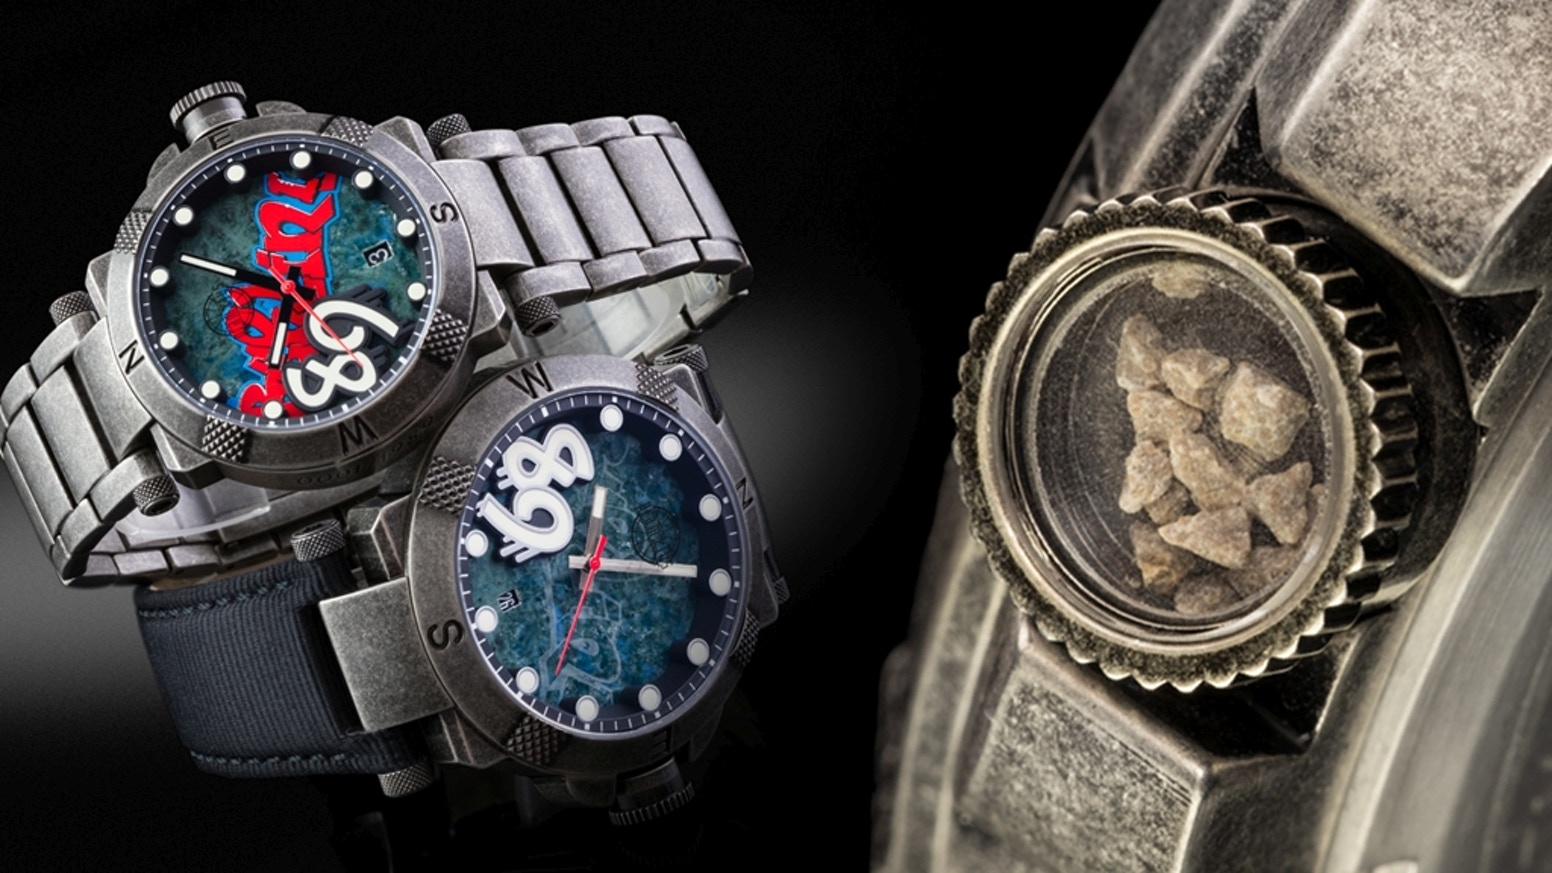 Actual pieces of wall visible in the crown, original graffiti on marble dial, 2 case sizes and dial colors. Automatic mechanical watch.